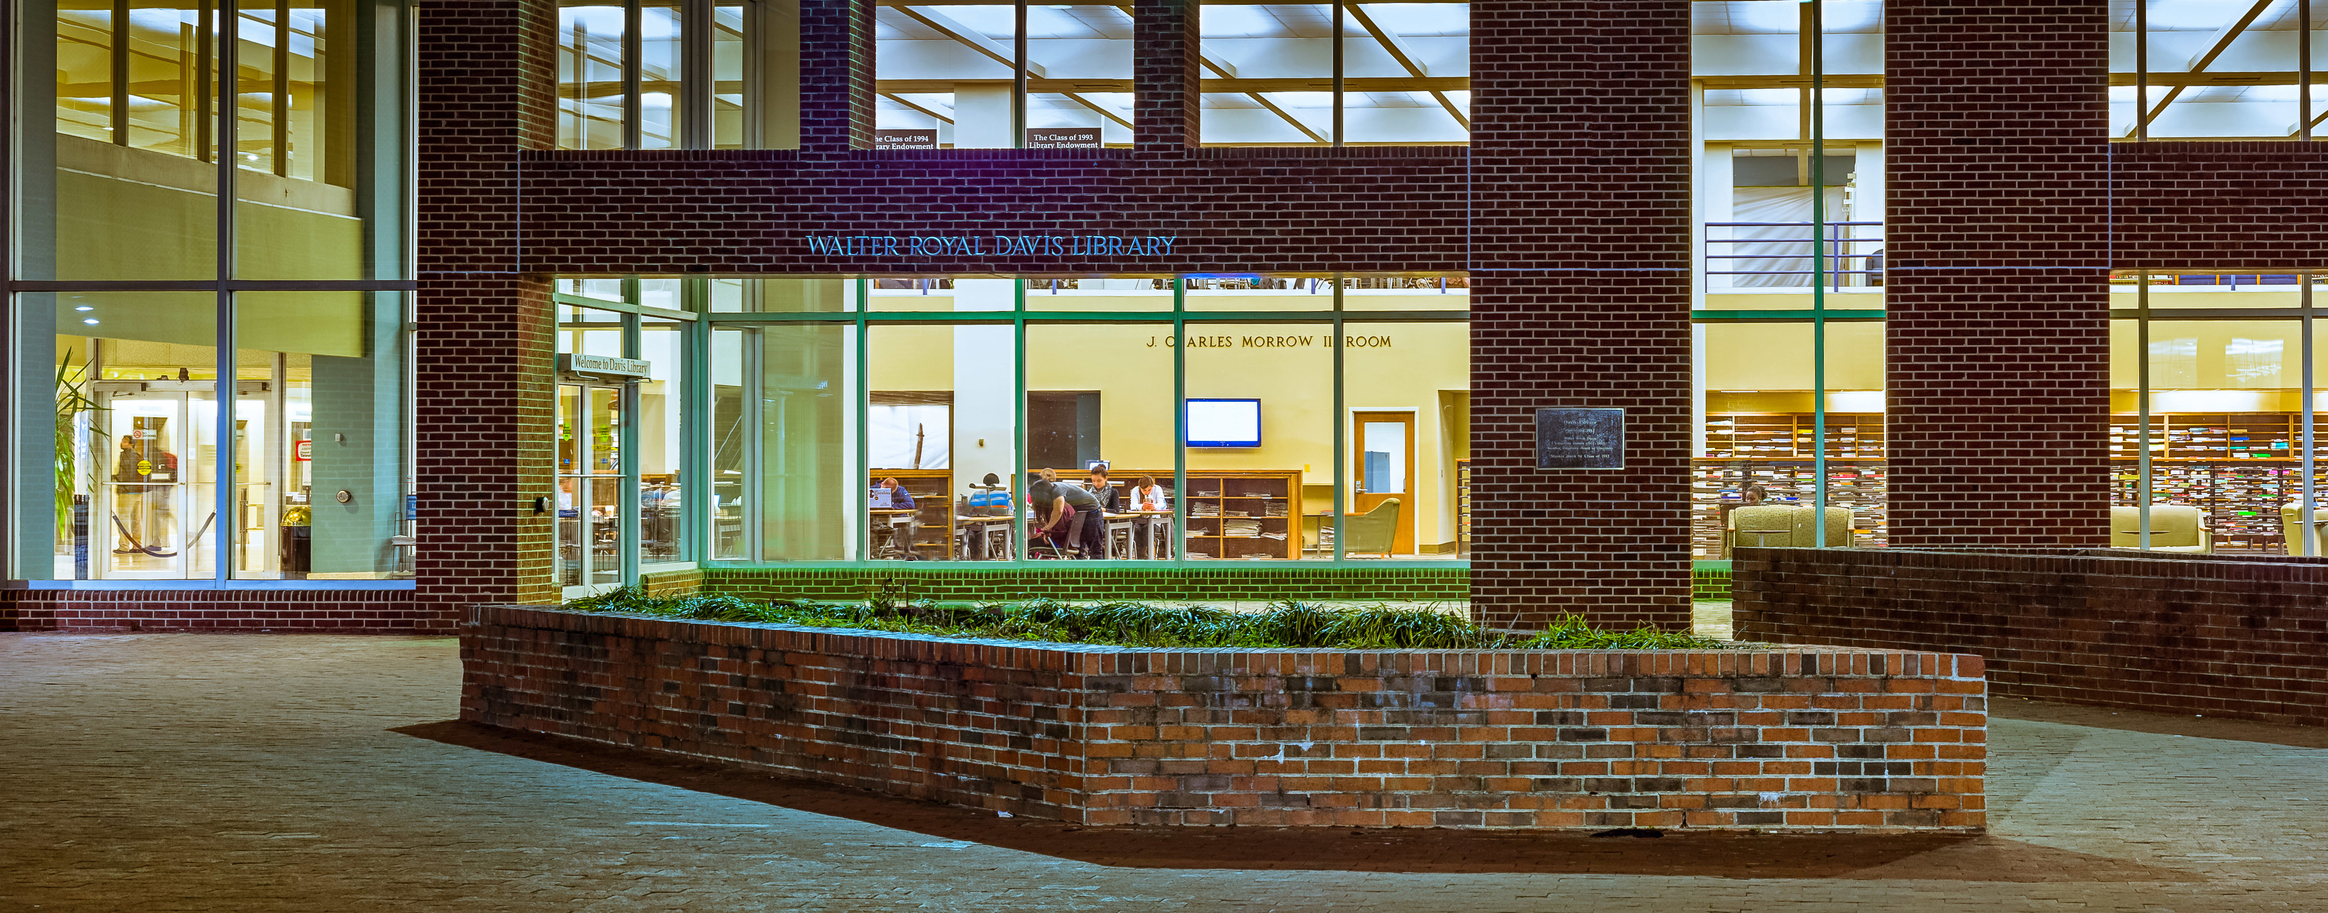 Davis Library at night